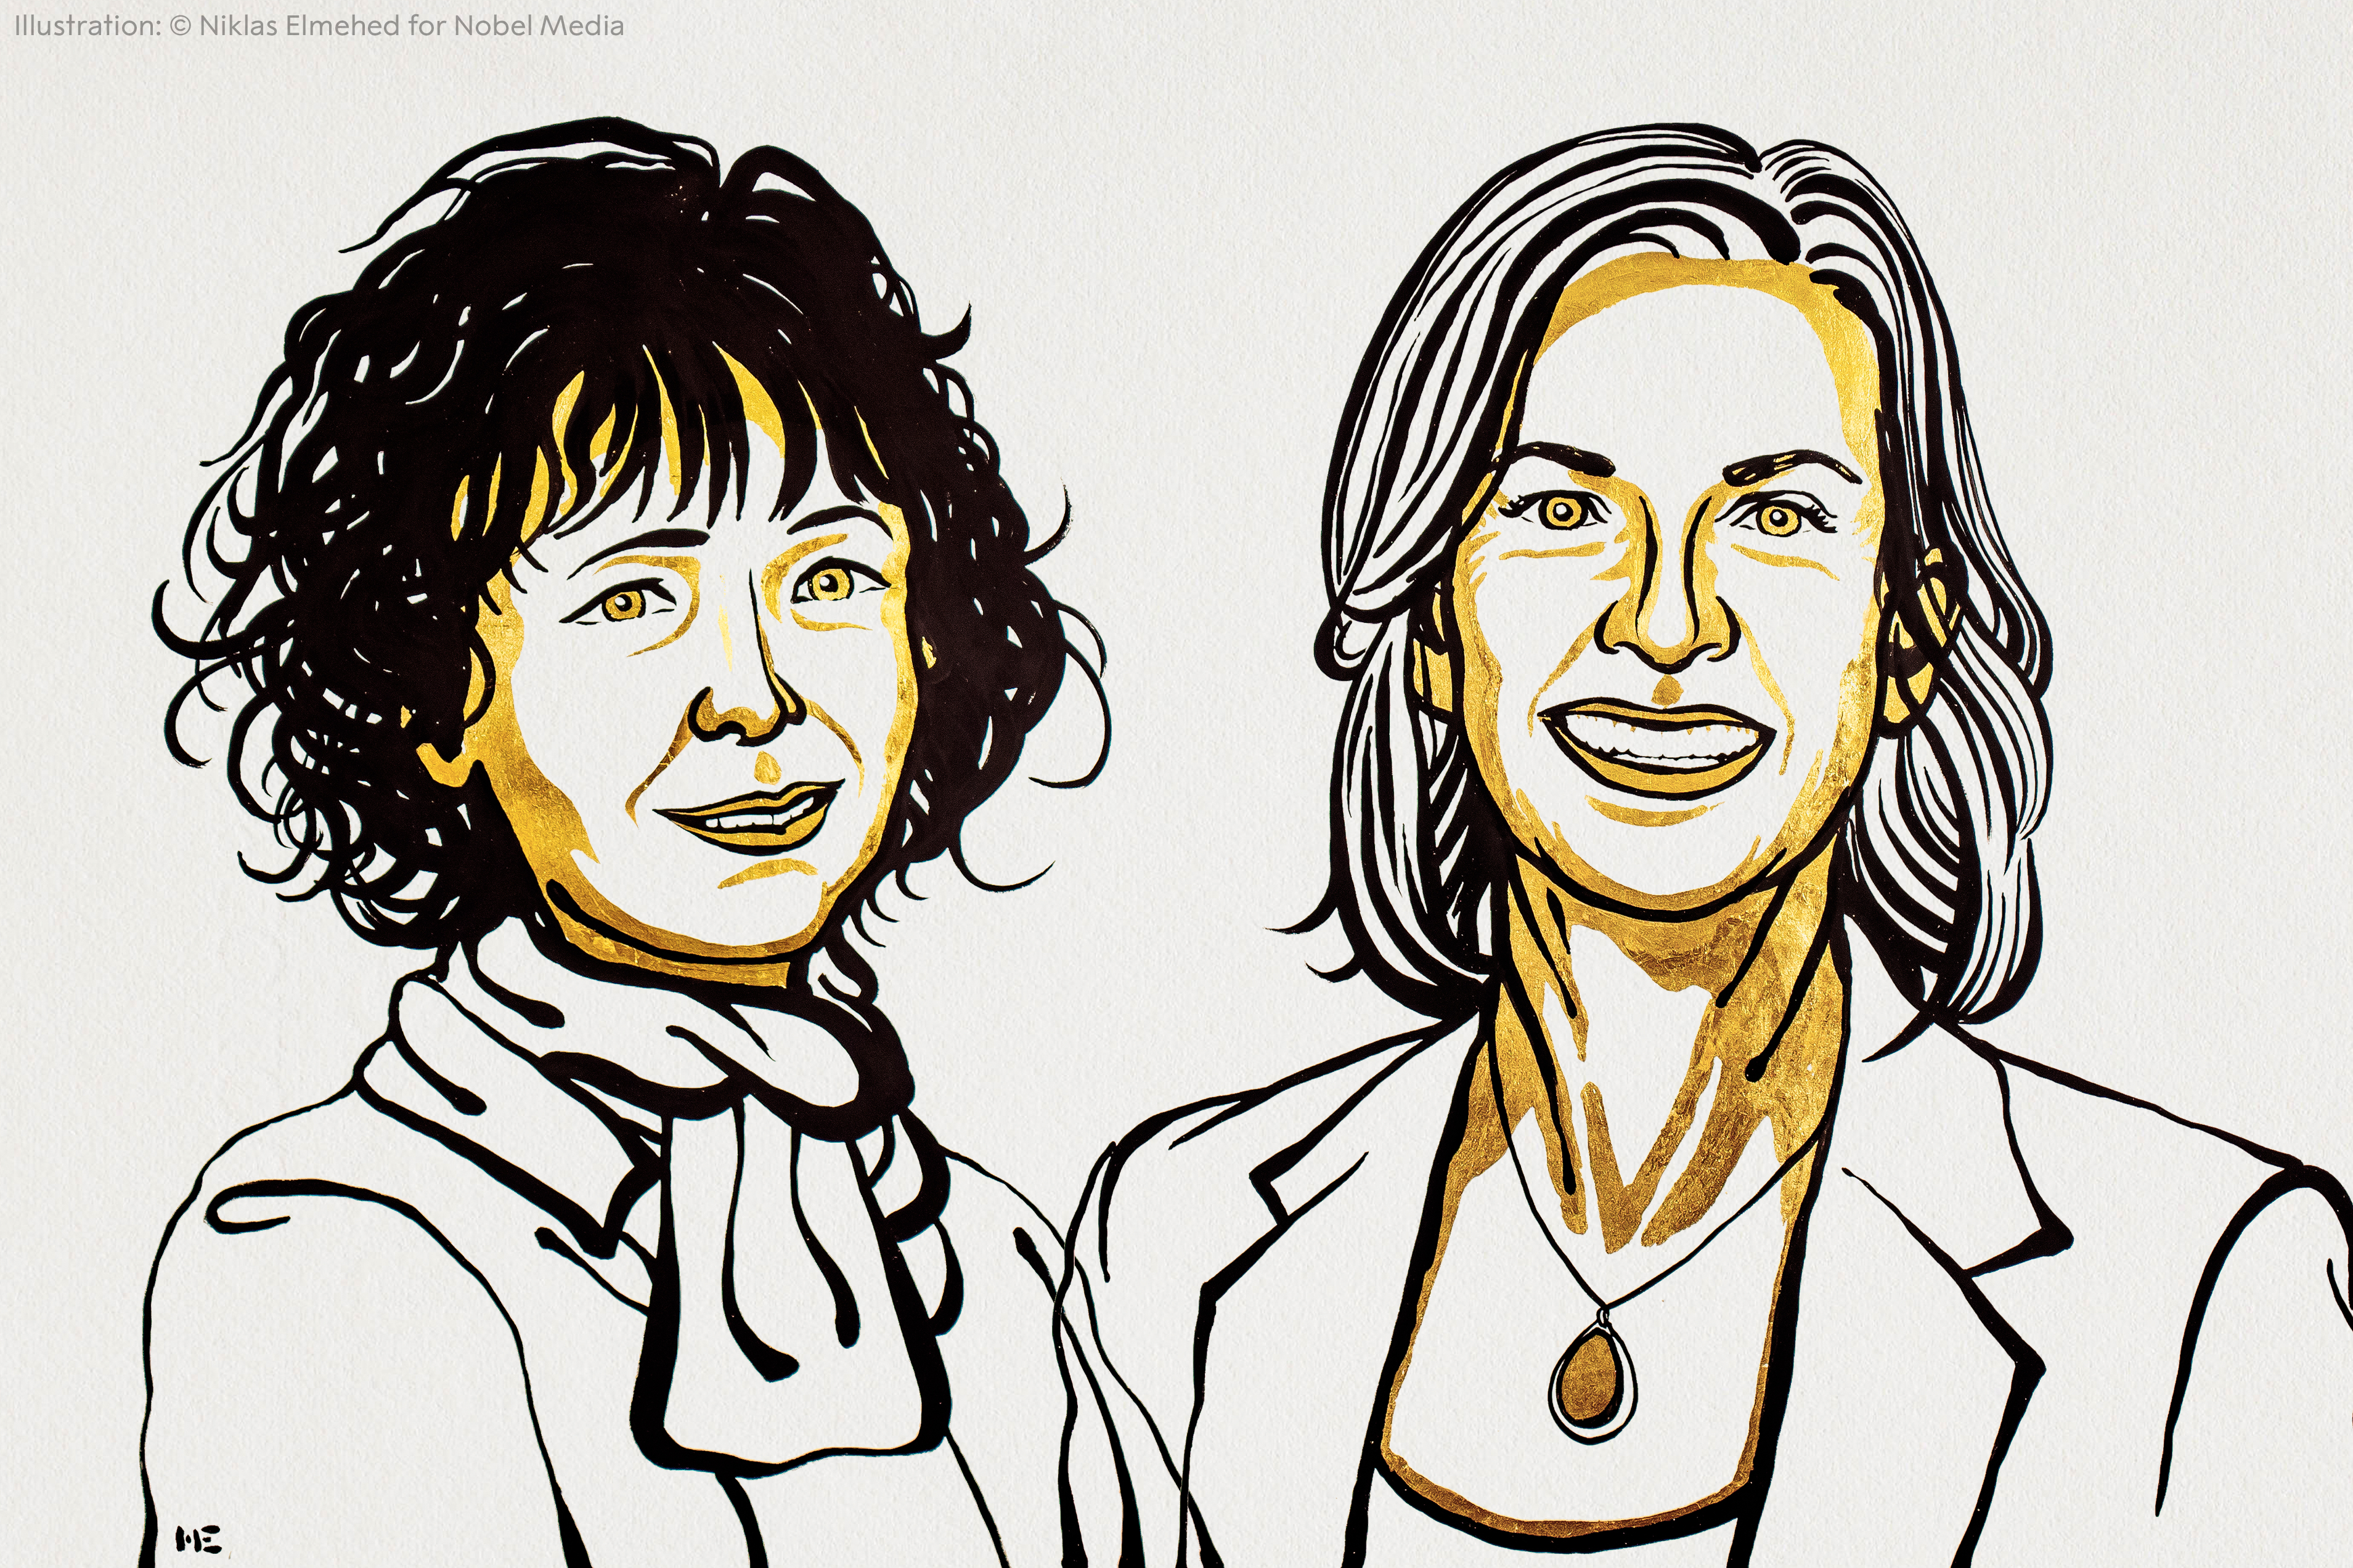 Emmanuelle Charpentier and Jennifer A. Doudna have shared this year's award